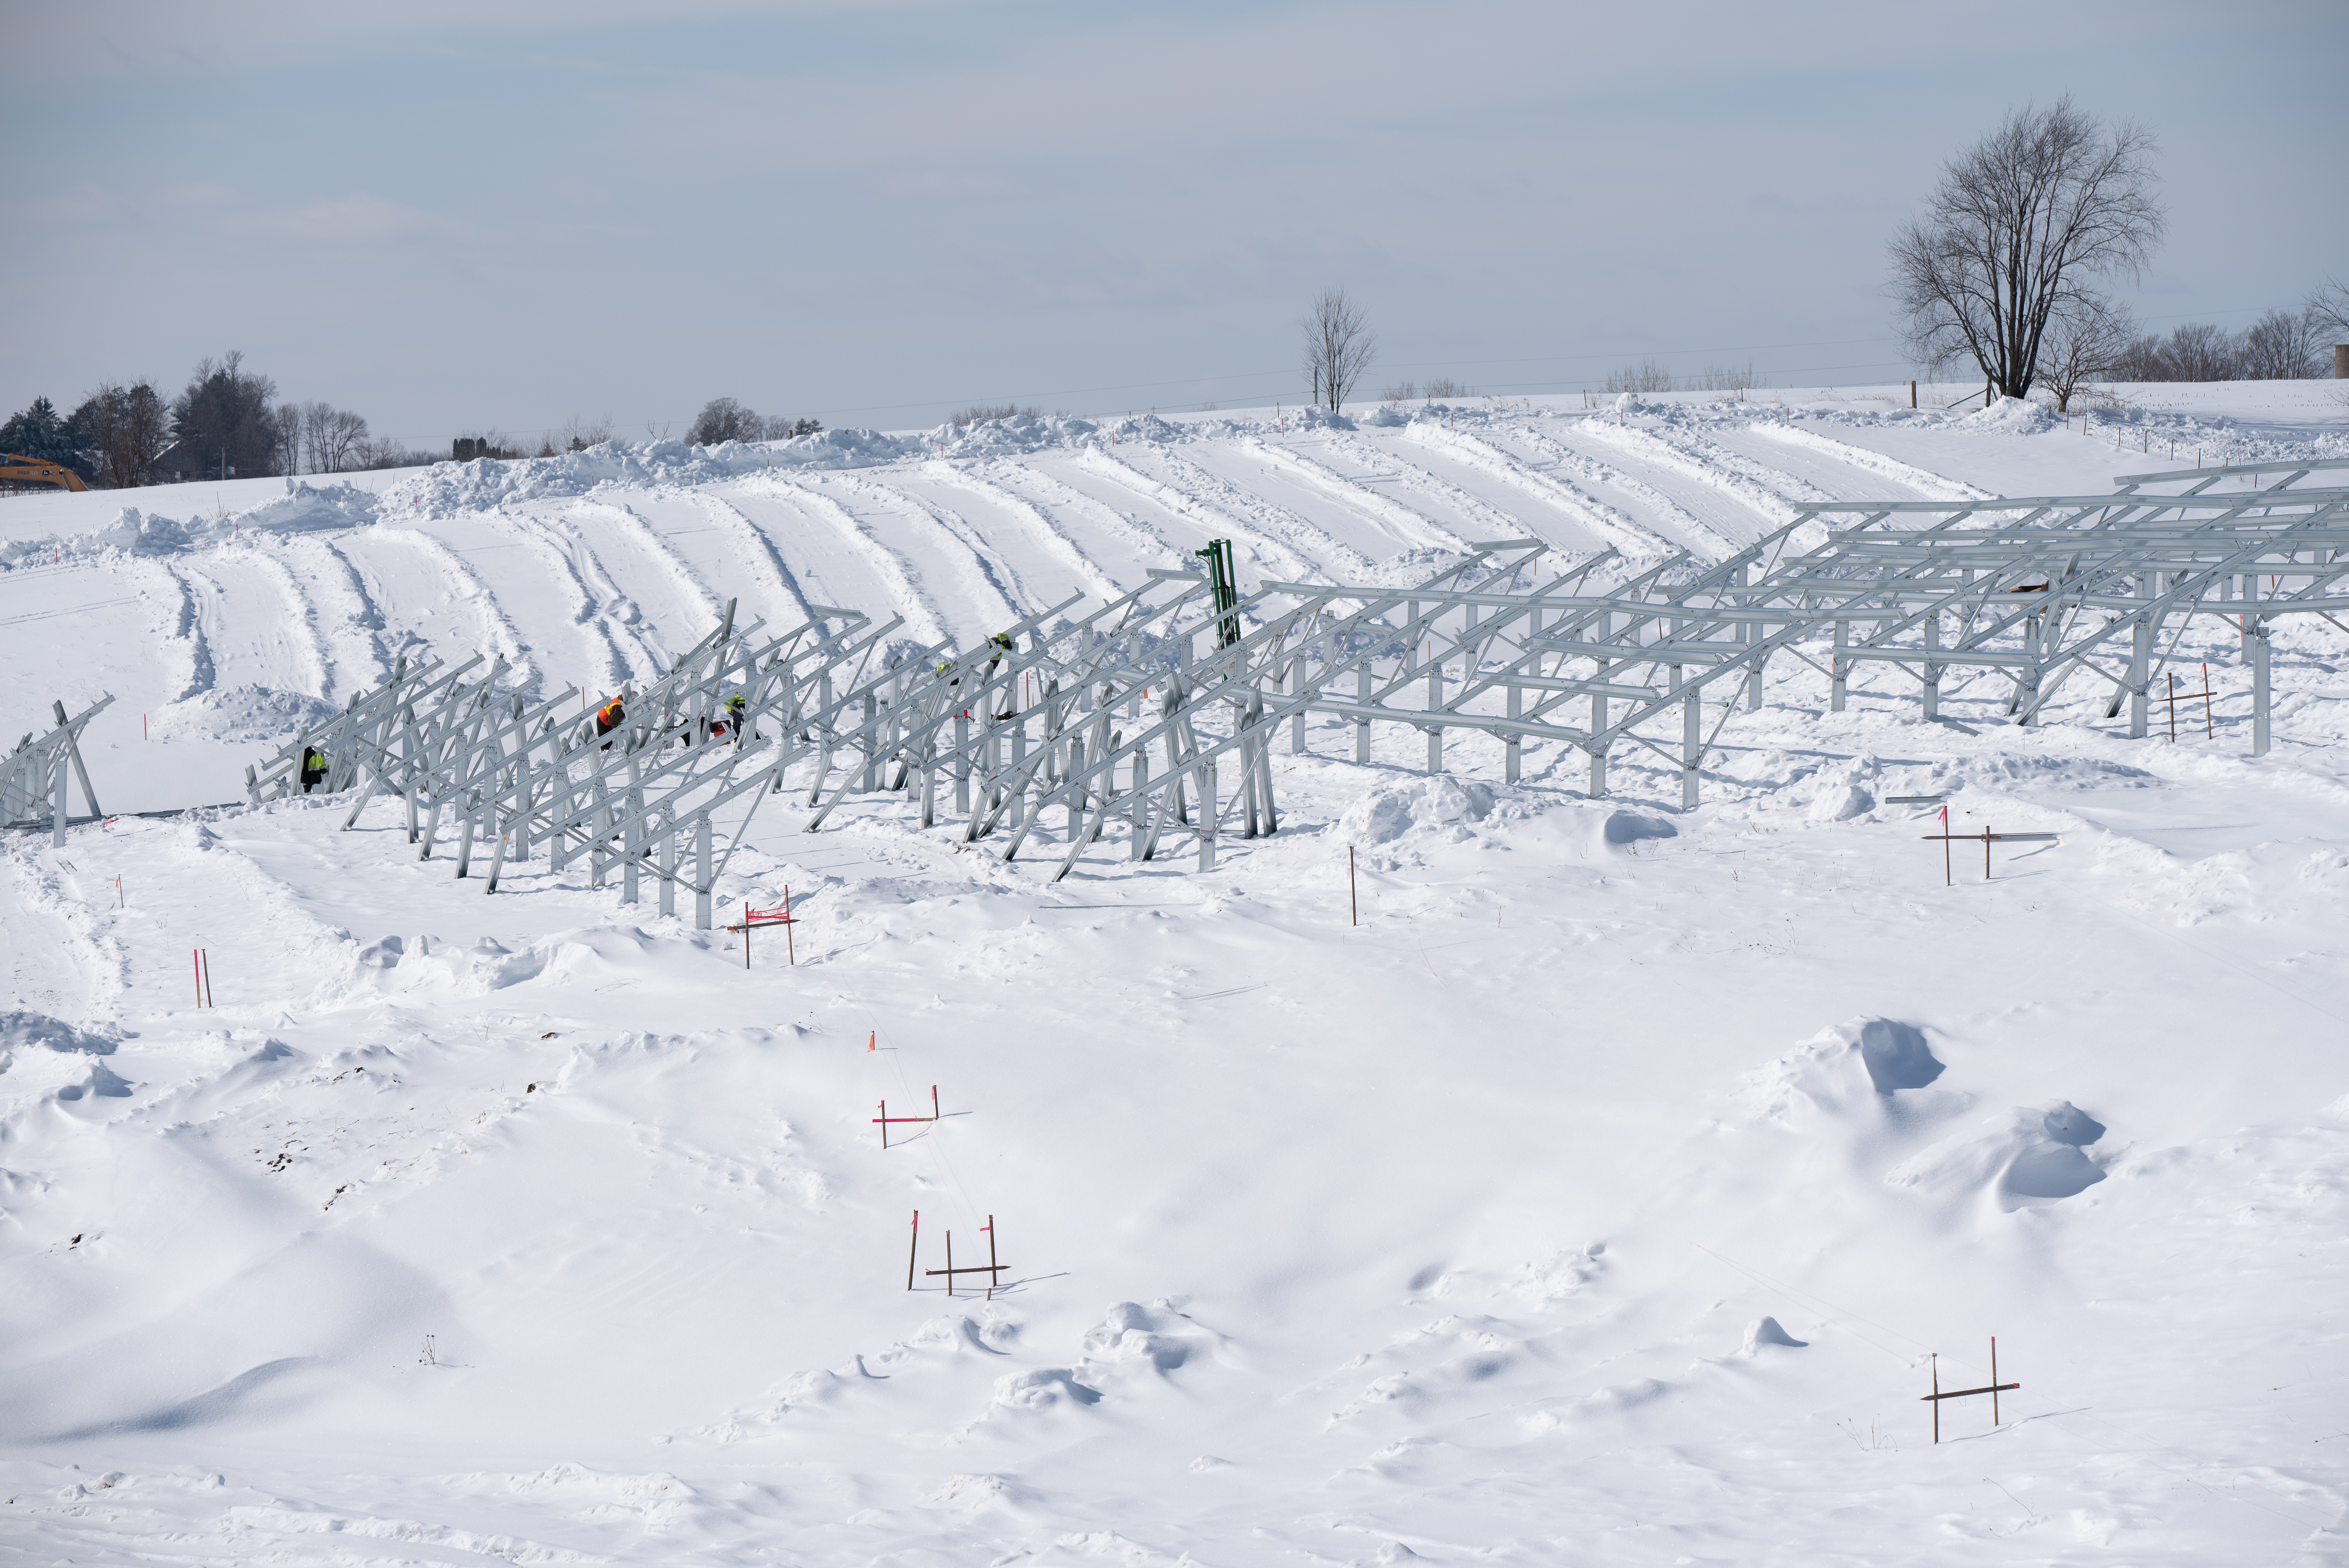 Workers installing the supports for solar panels in a snow-covered field.